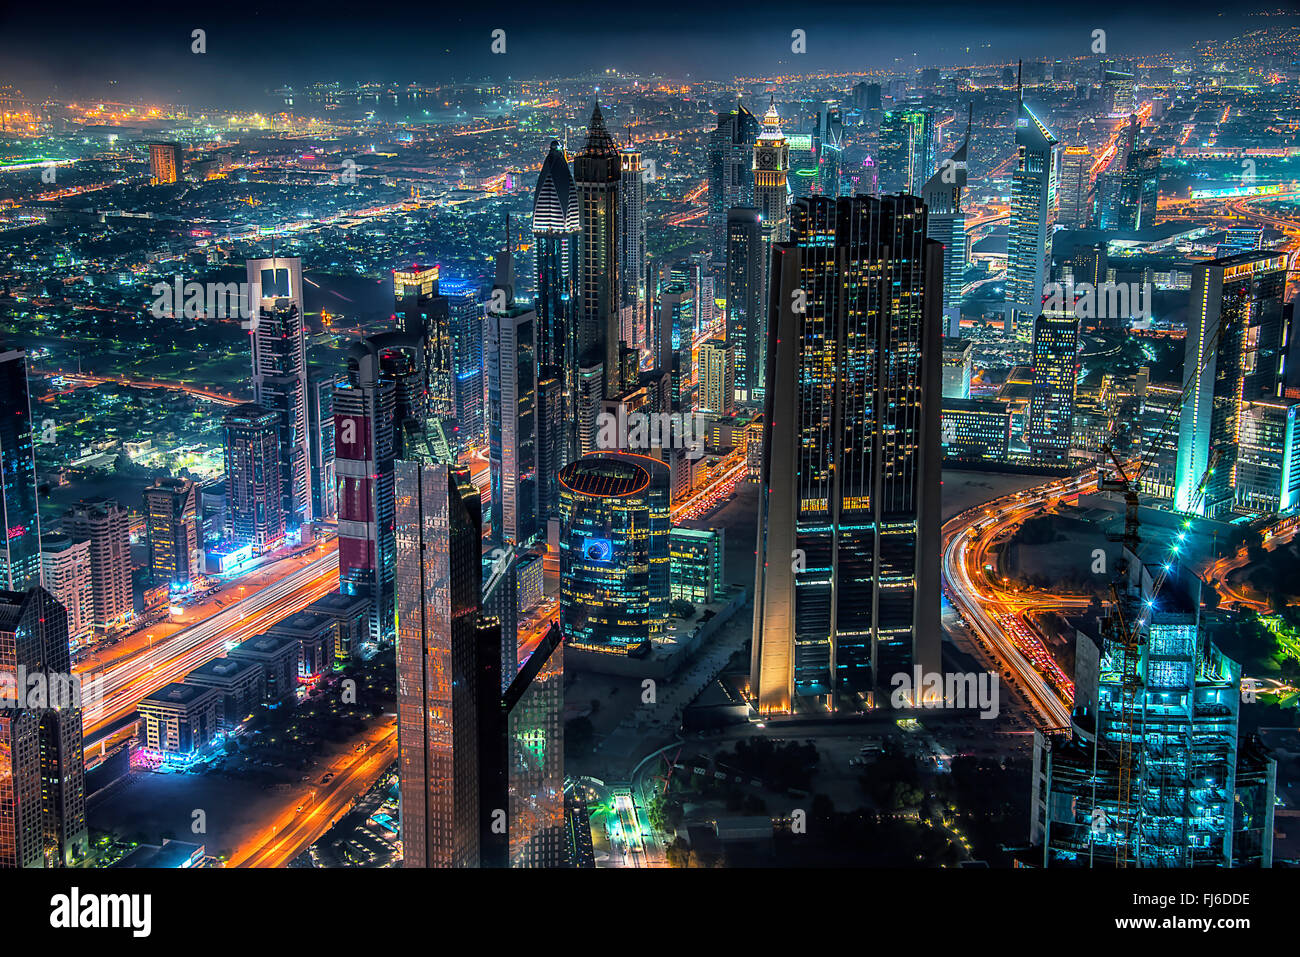 Dubai city by night - Stock Image